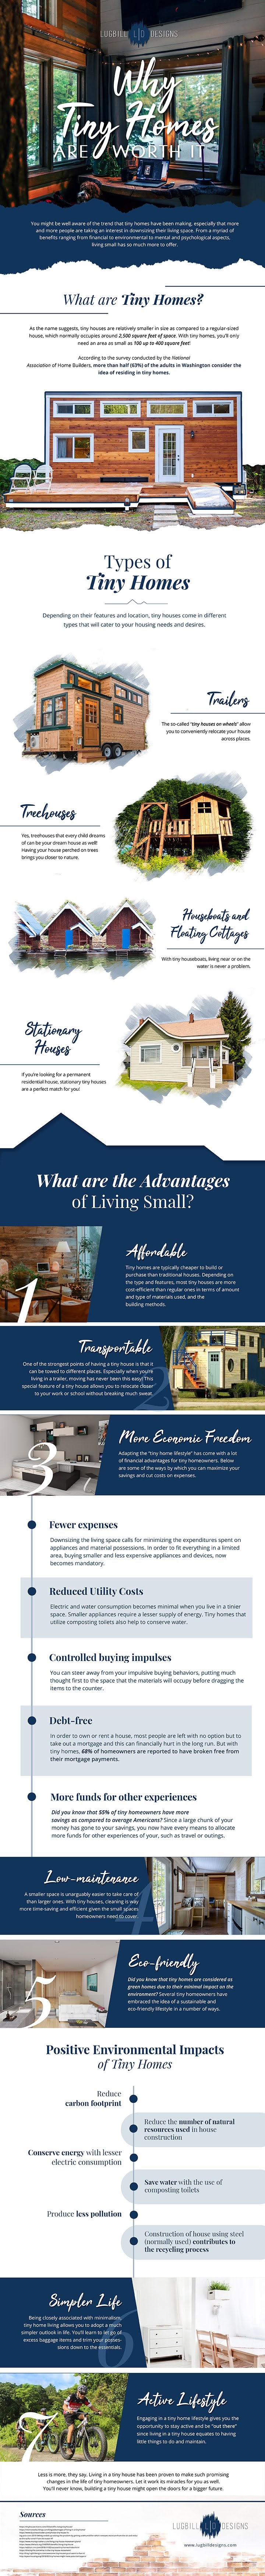 7 Reasons Why Tiny Homes are Worth It #infographic